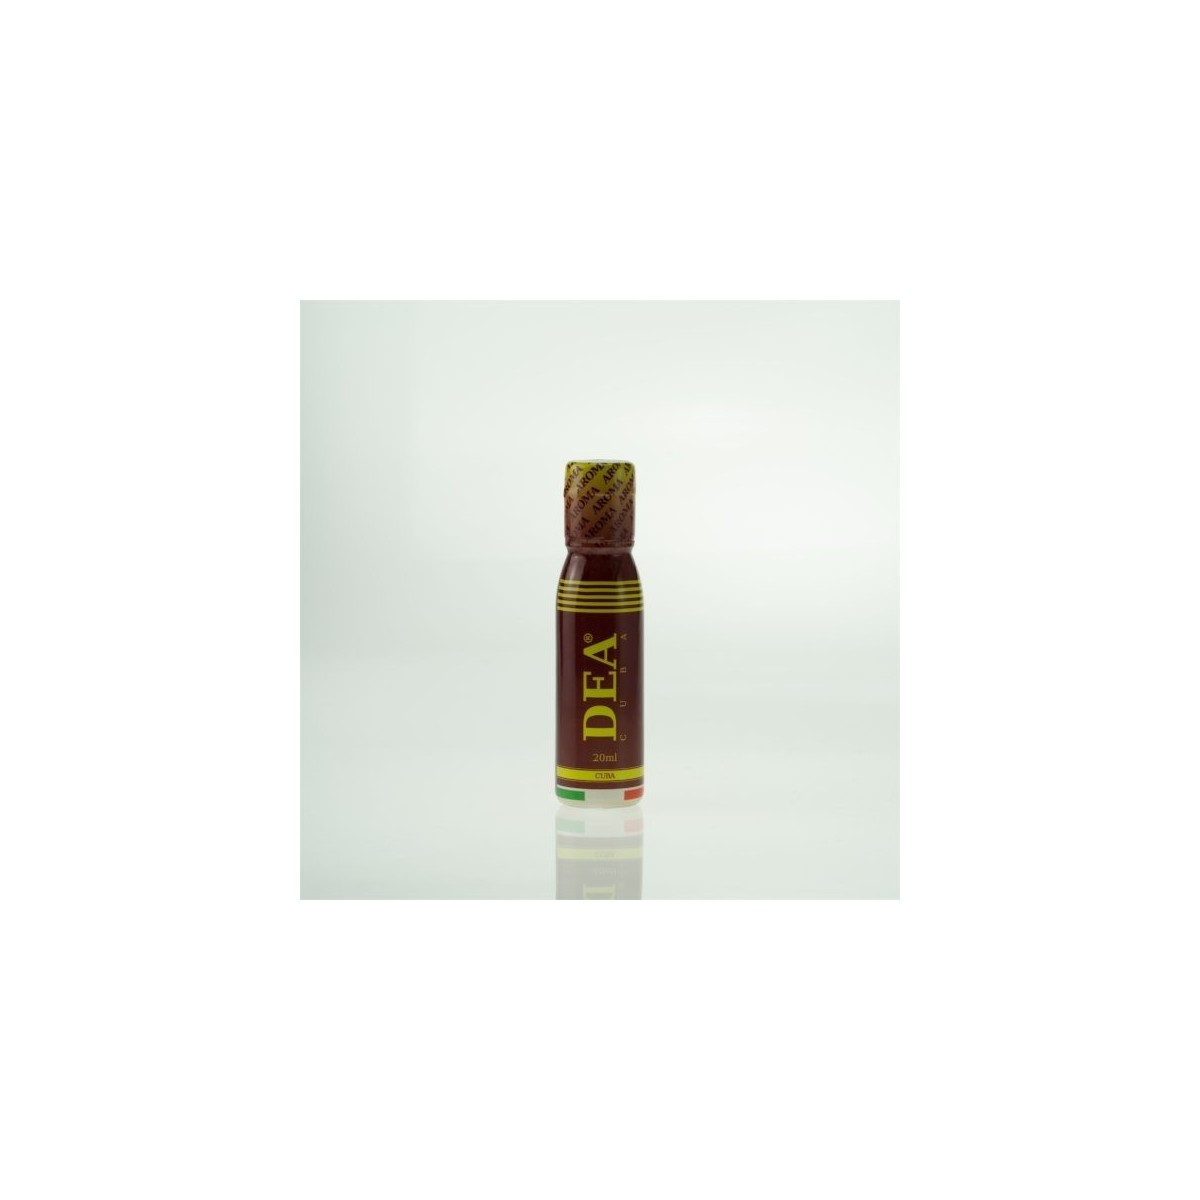 Cuba DEA Aroma Scomposto 20ml in flacone da 60ml